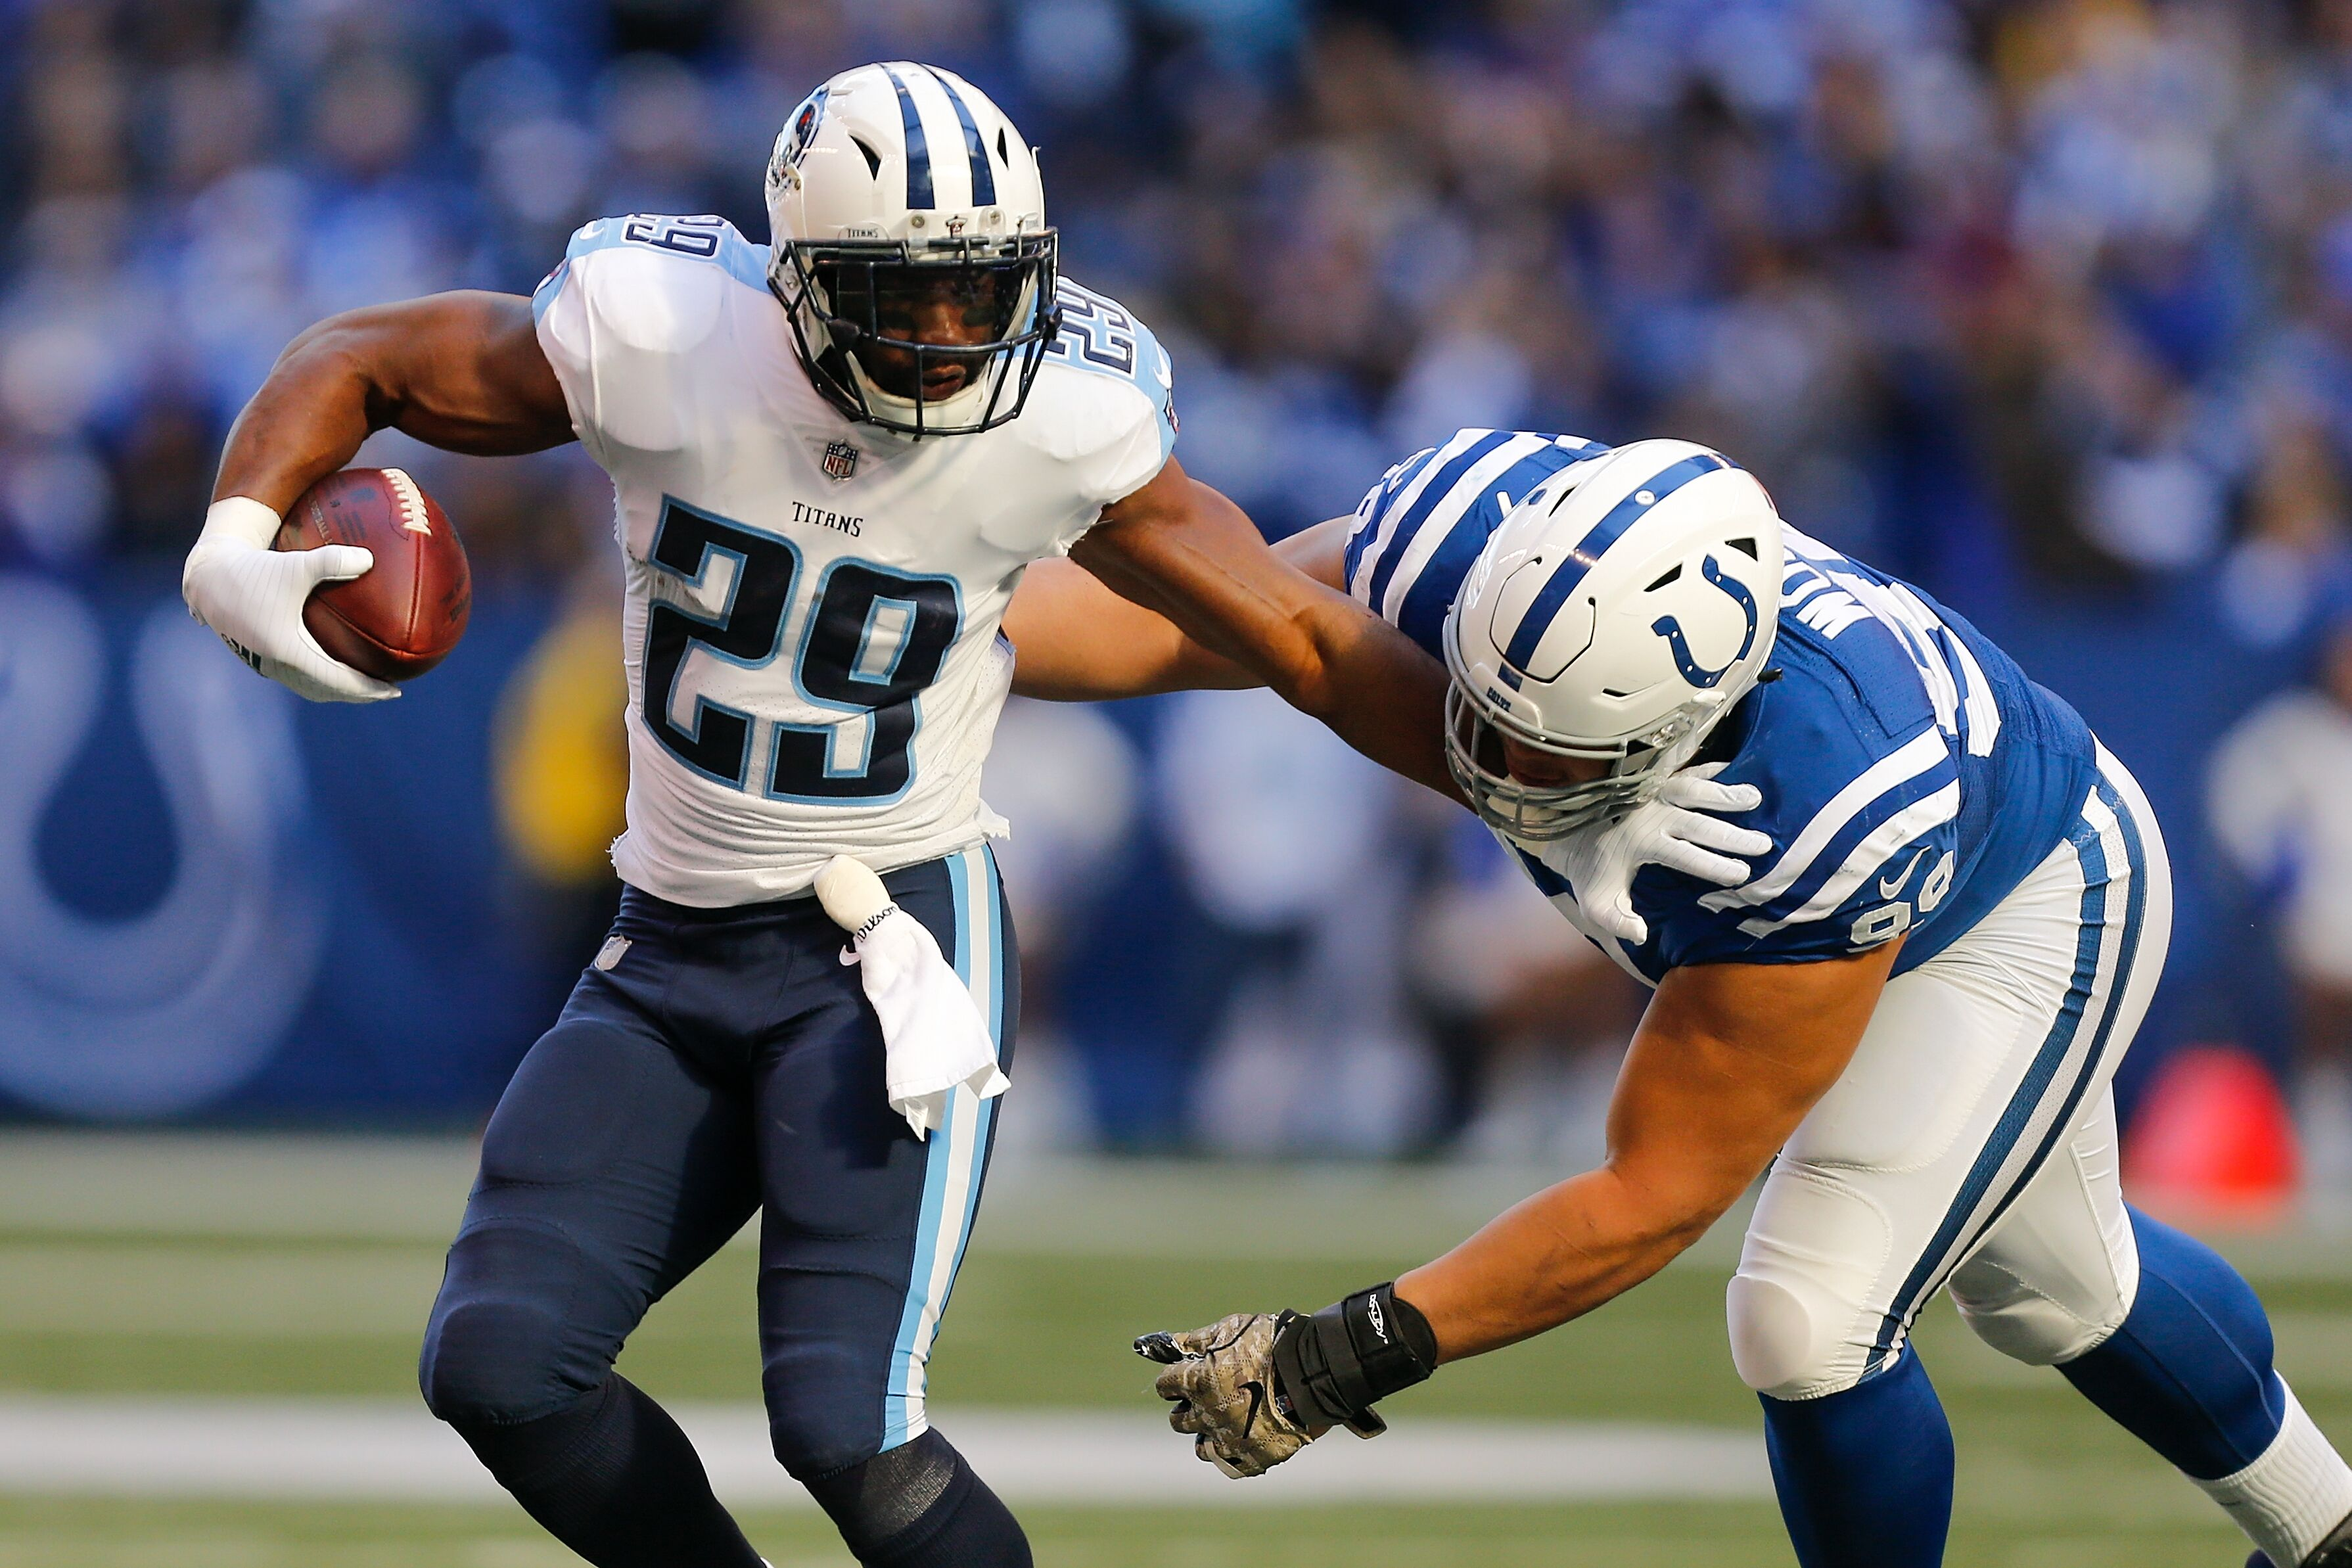 879633702-tennessee-titans-v-indianapolis-colts.jpg